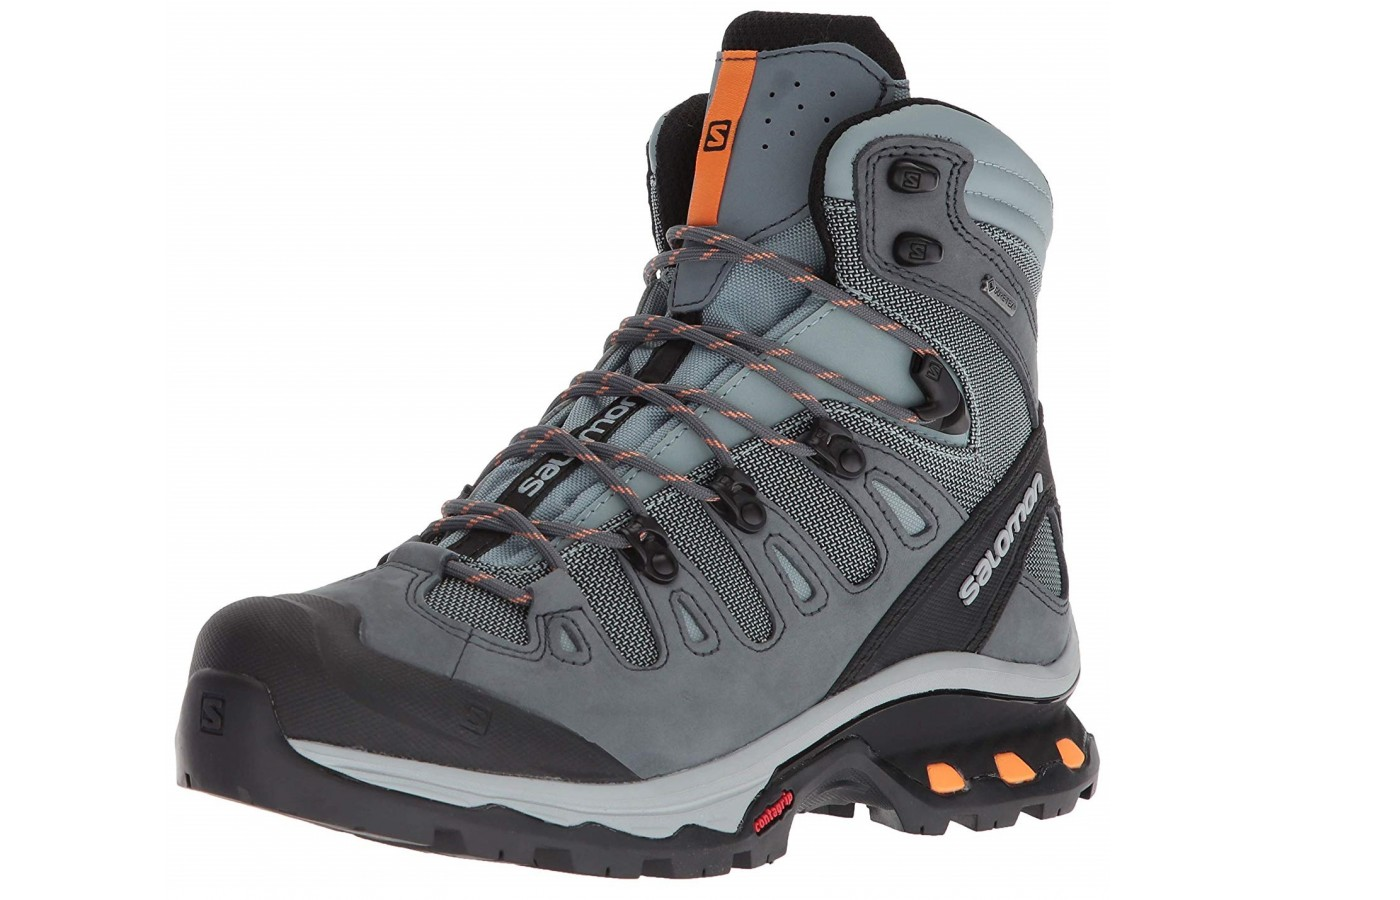 The Salomon Quest 4D 3 GTX offers a synthetic and leather upper for breathability and weather proofing.